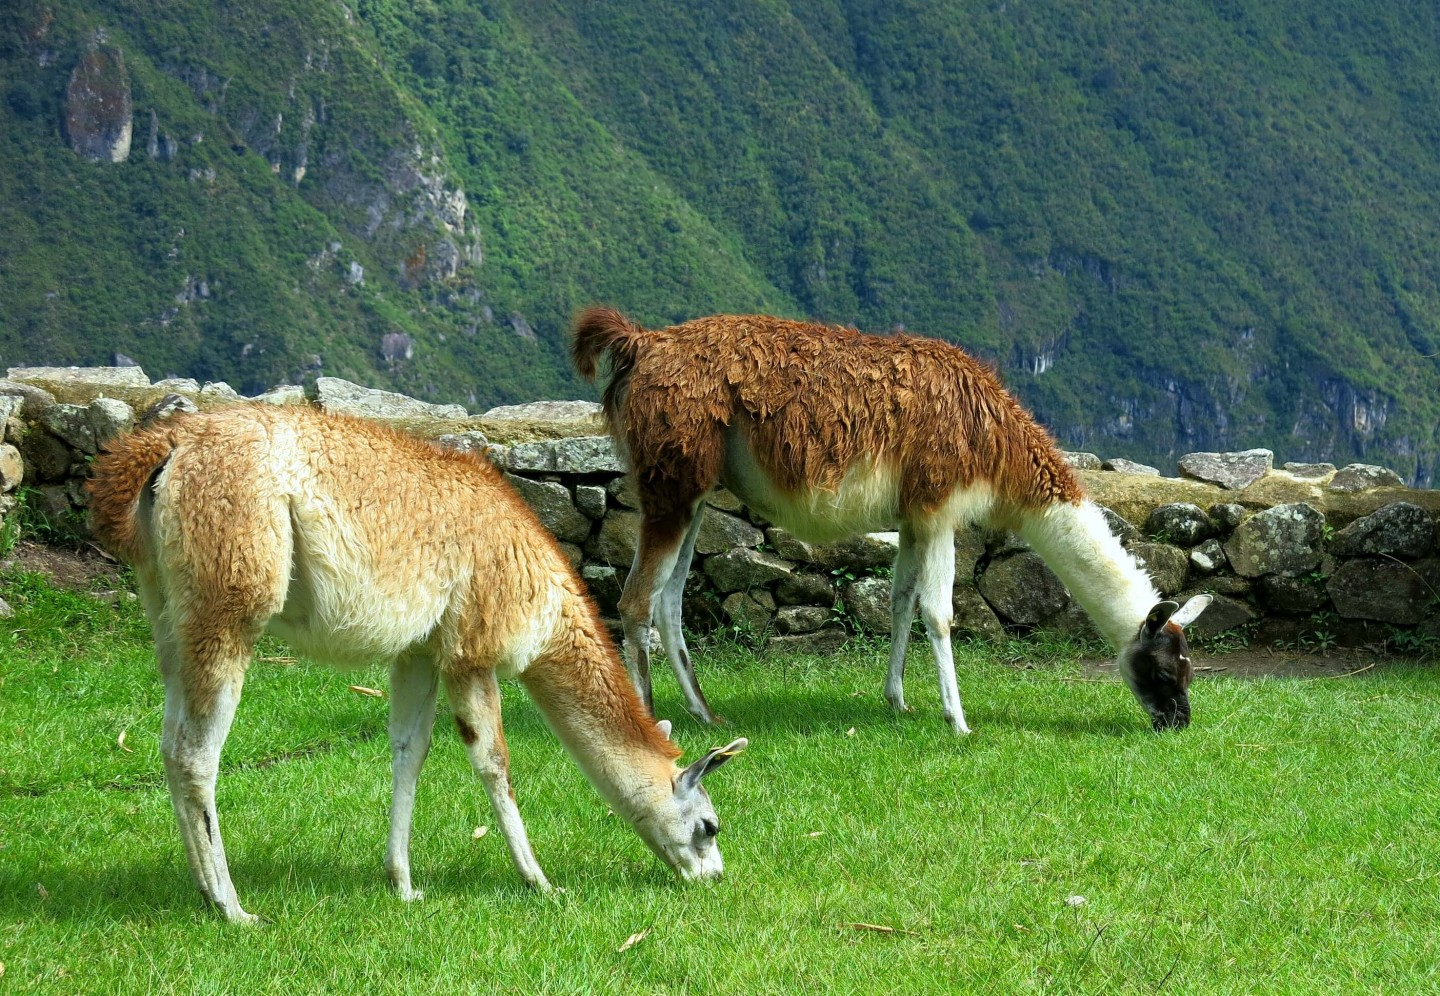 Alpacas mowing the grass at Machu Picchu, Peru.